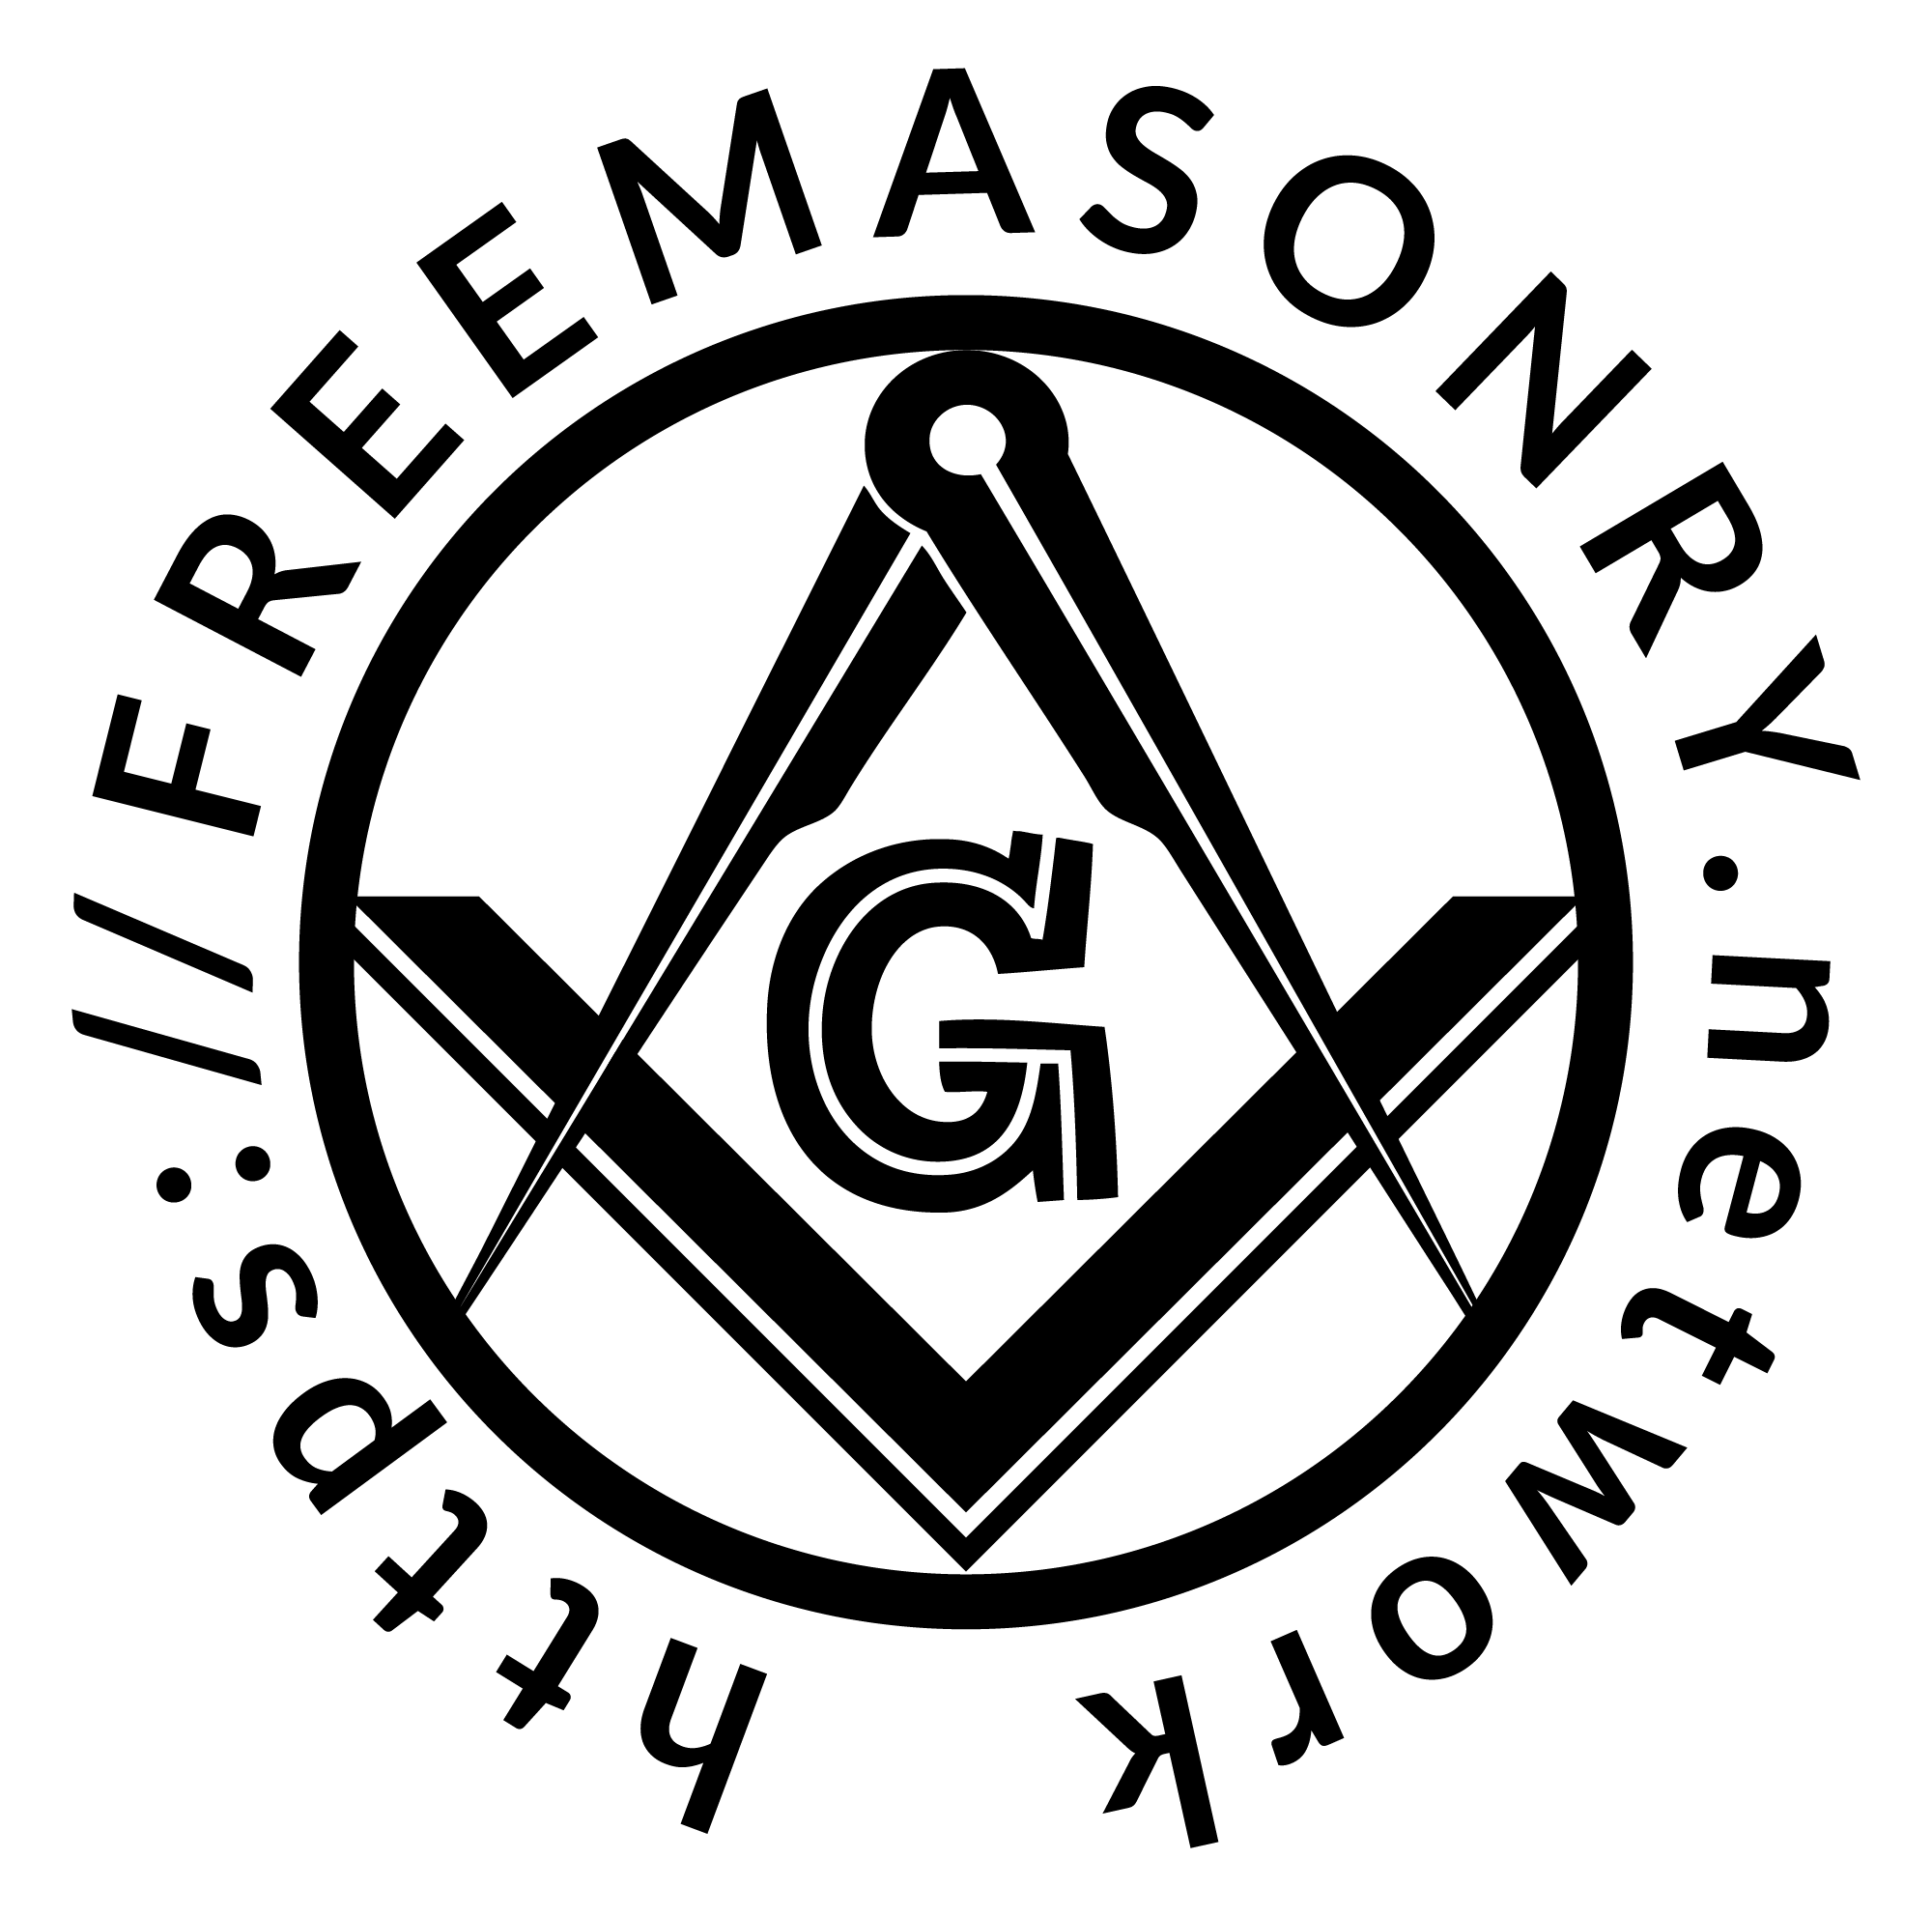 FREEMASONRY AND ISLAM